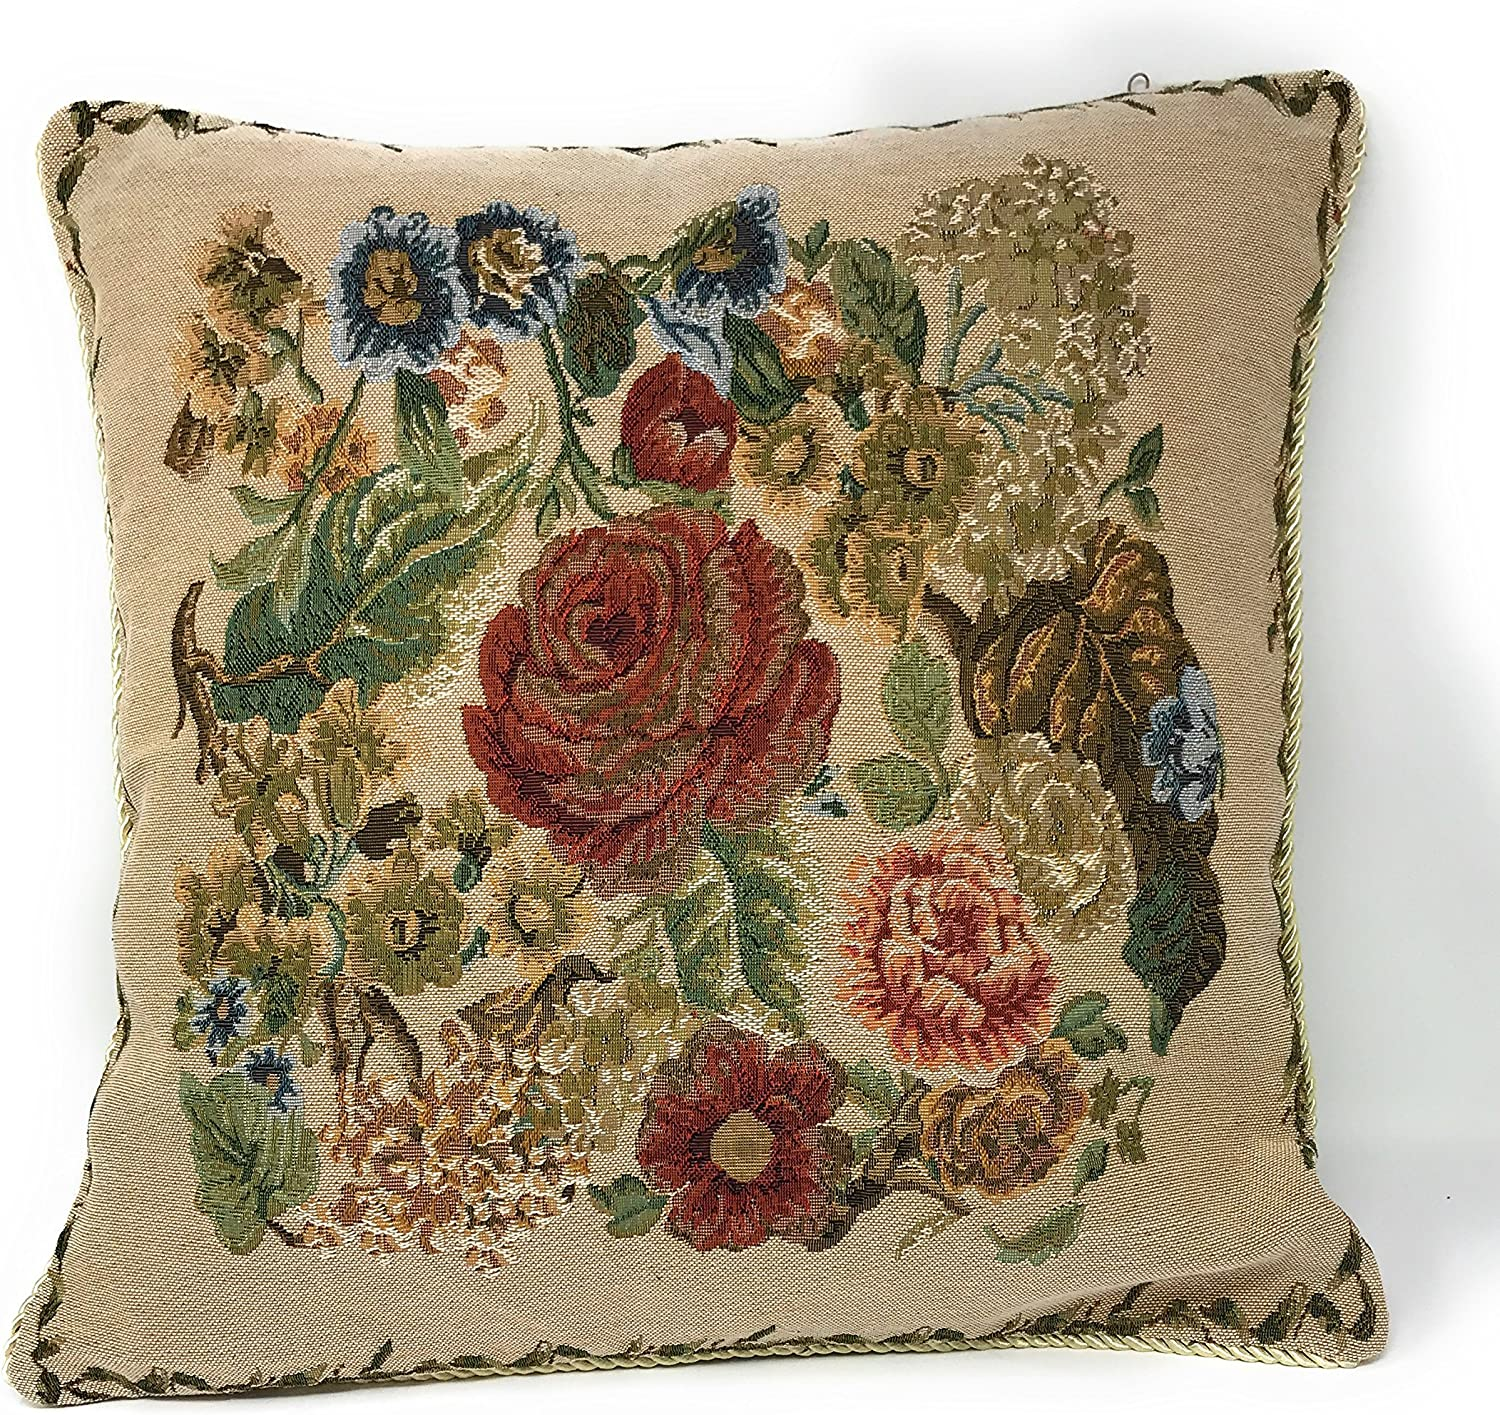 Tache 1 Piece 18 X 18 Inch Colorful Floral Country Rustic Morning Meadow Decorative Cushion Throw Accent Pillow Cover - 3098